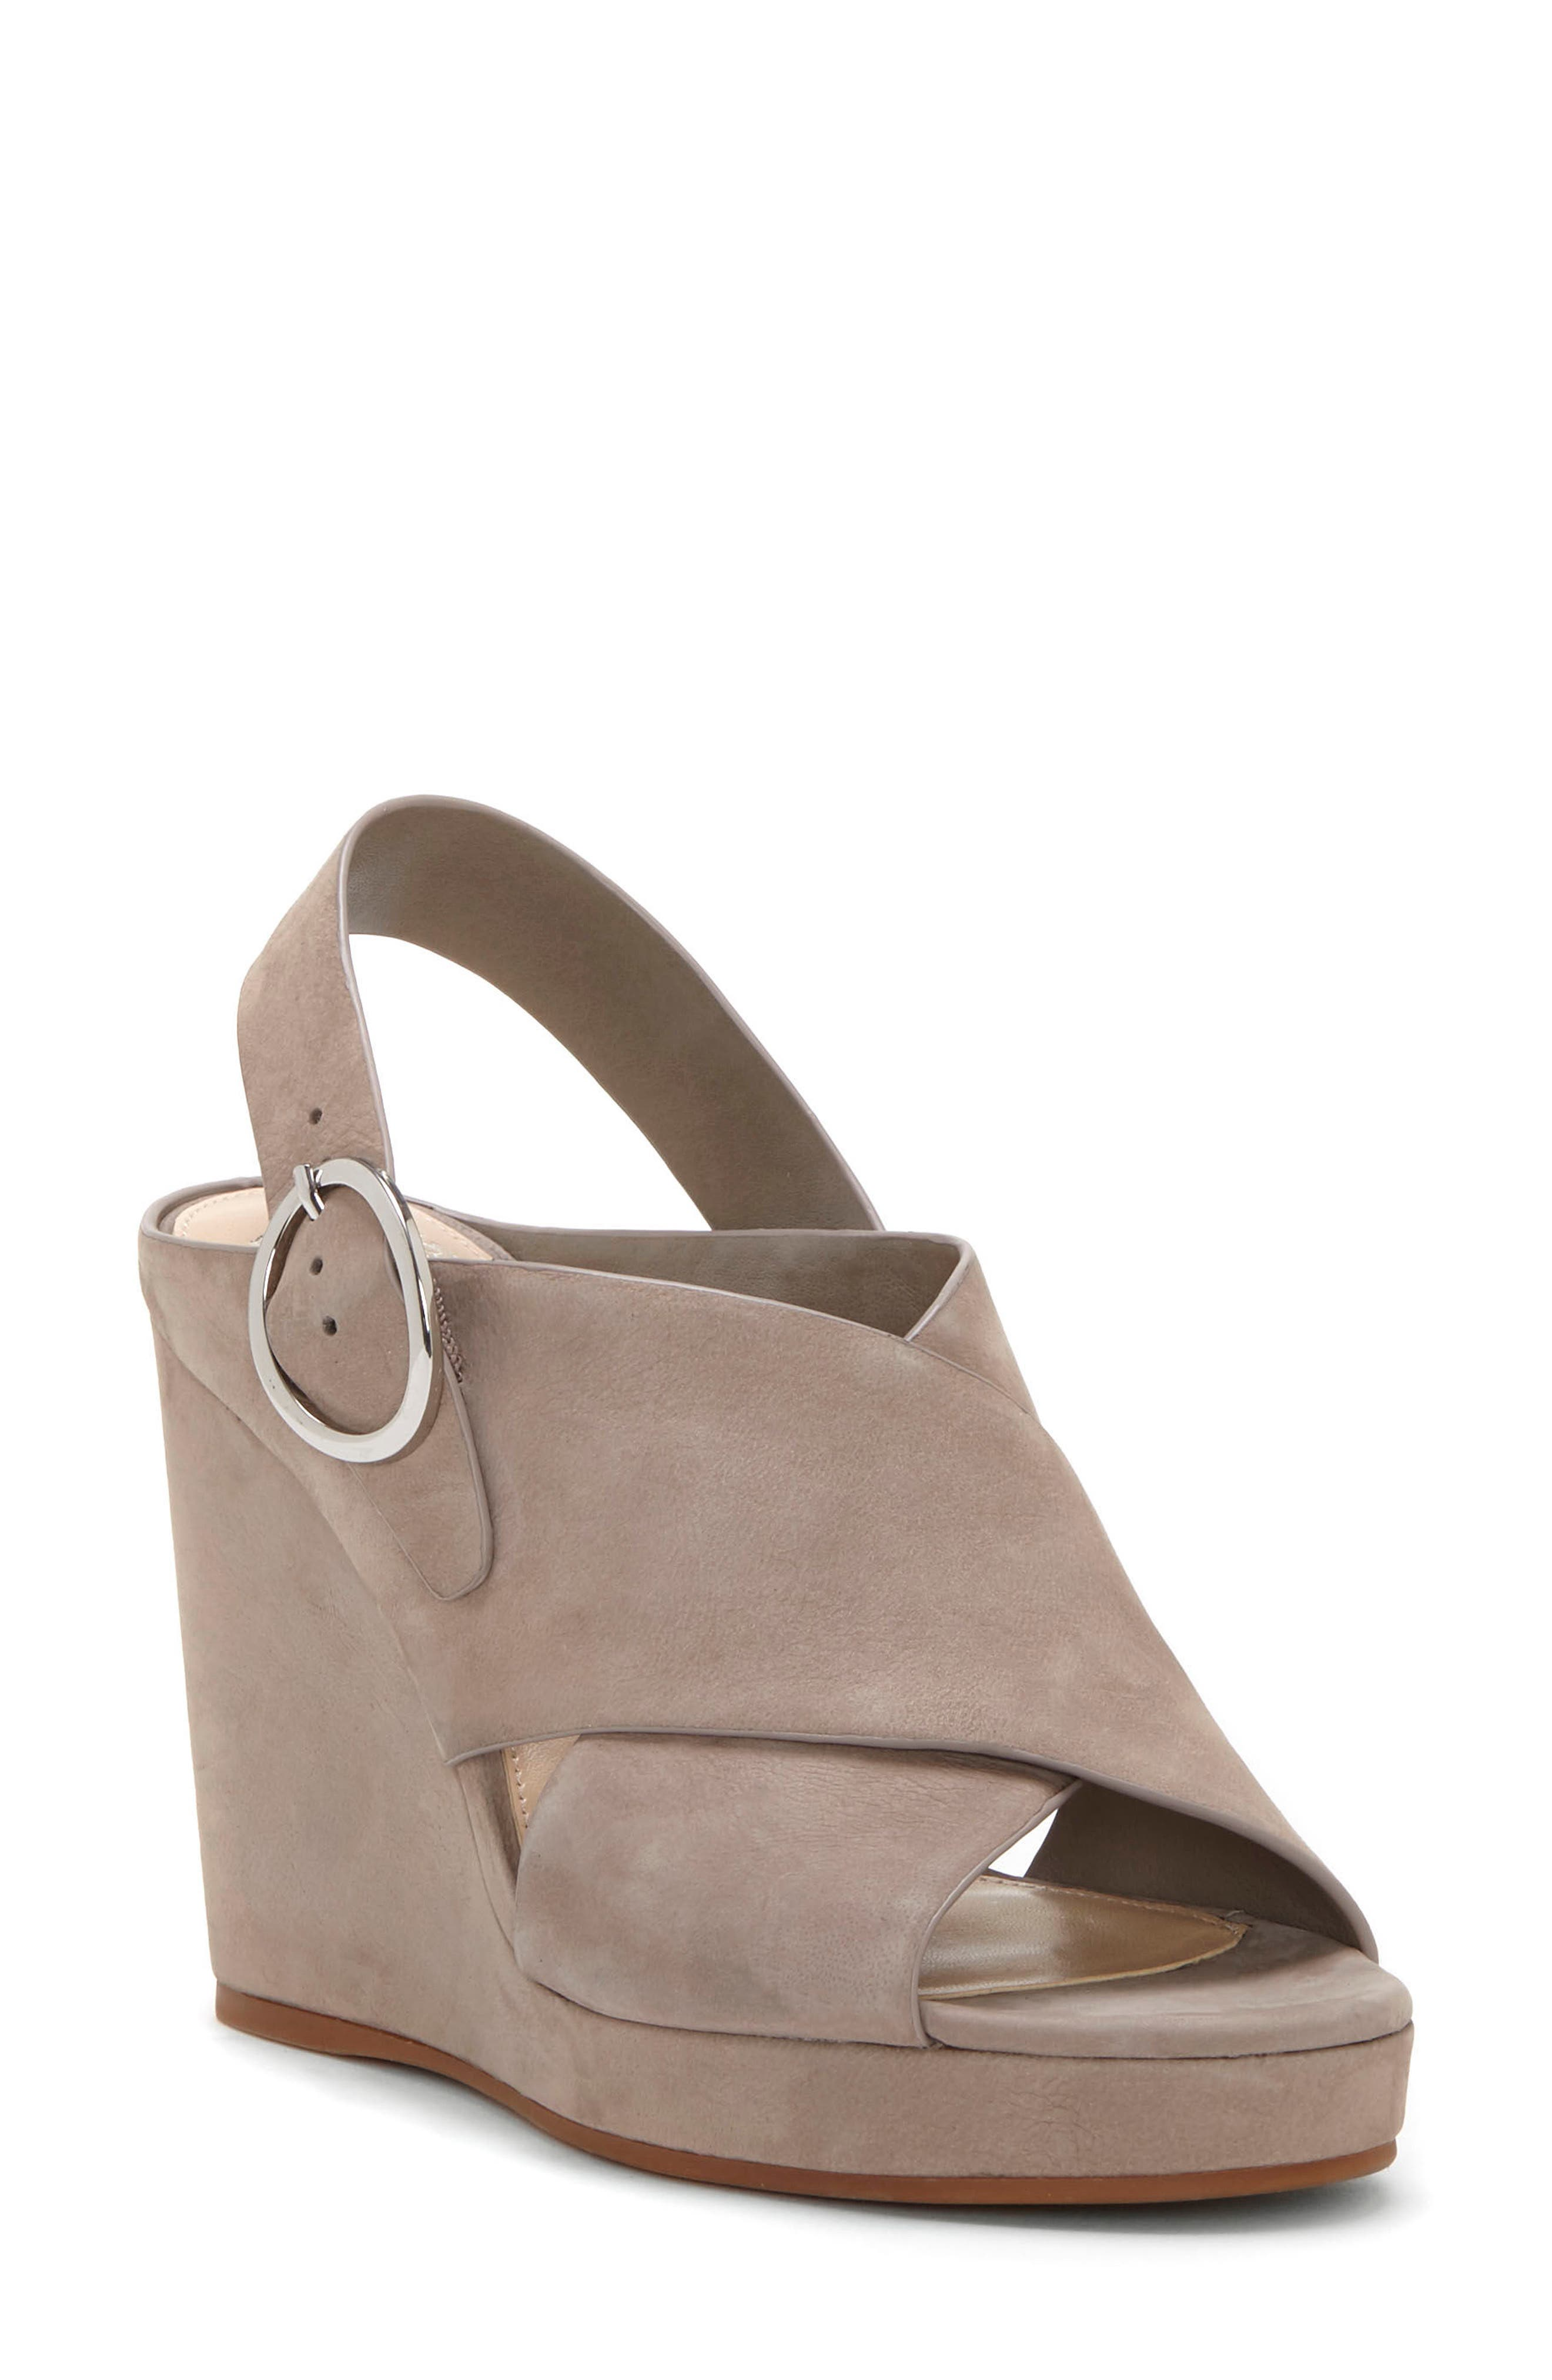 Iteena Wedge Sandal,                         Main,                         color, Hippo Grey Leather